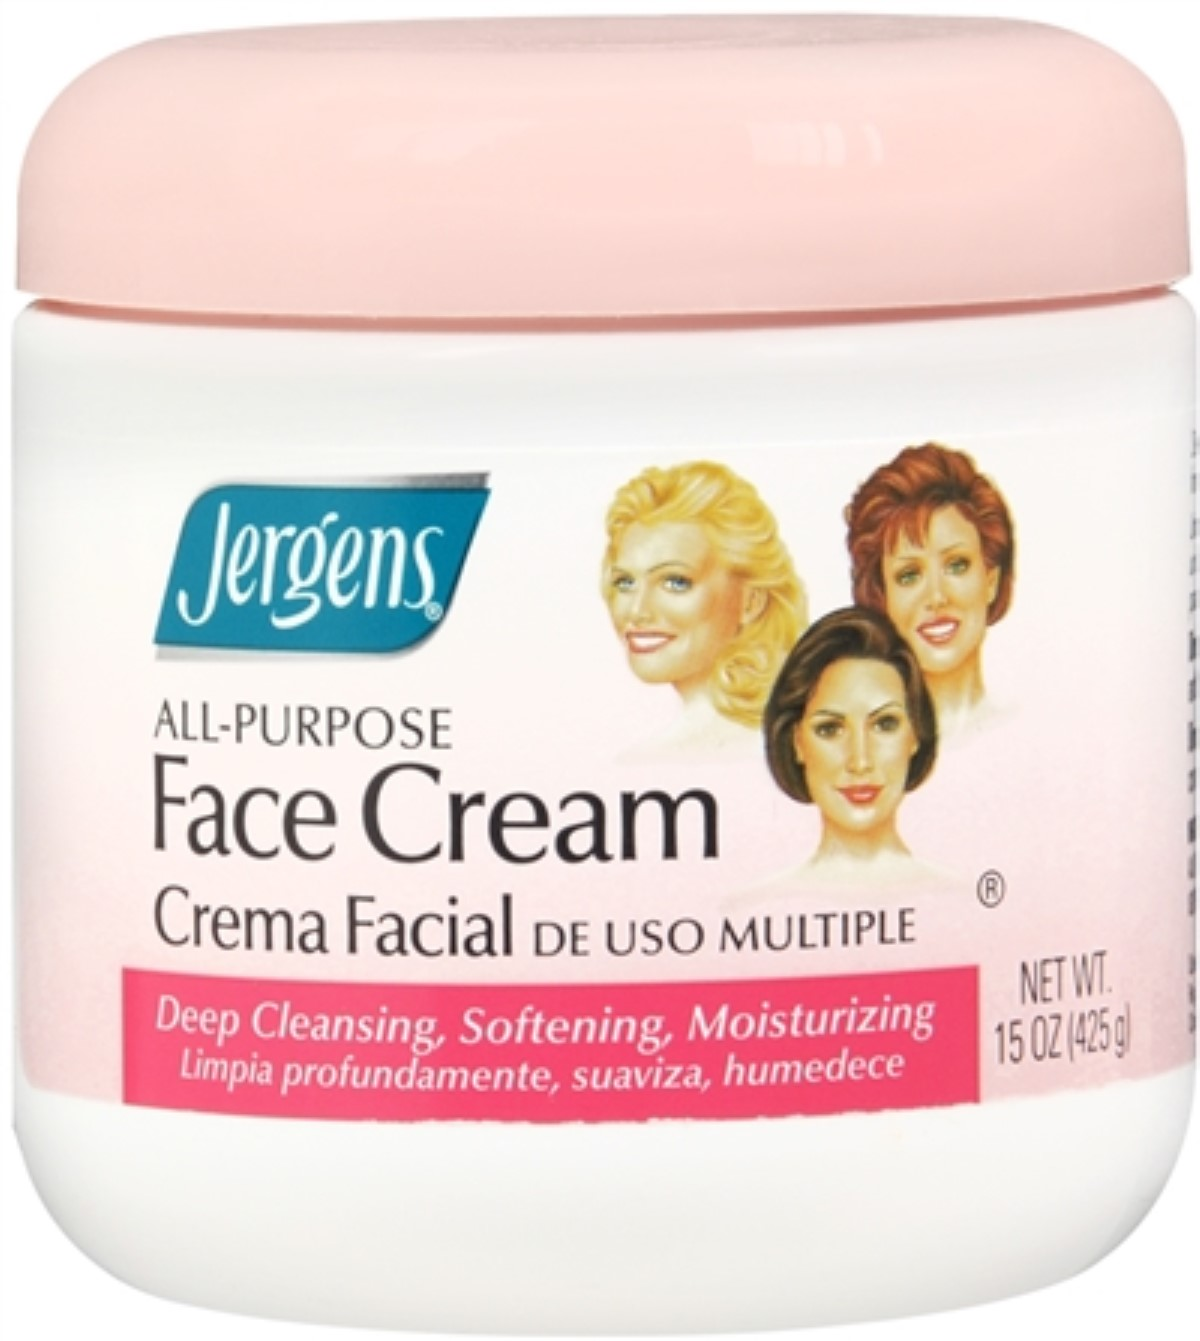 Jergens All-Purpose Face Cream 15 oz (Pack of 4)